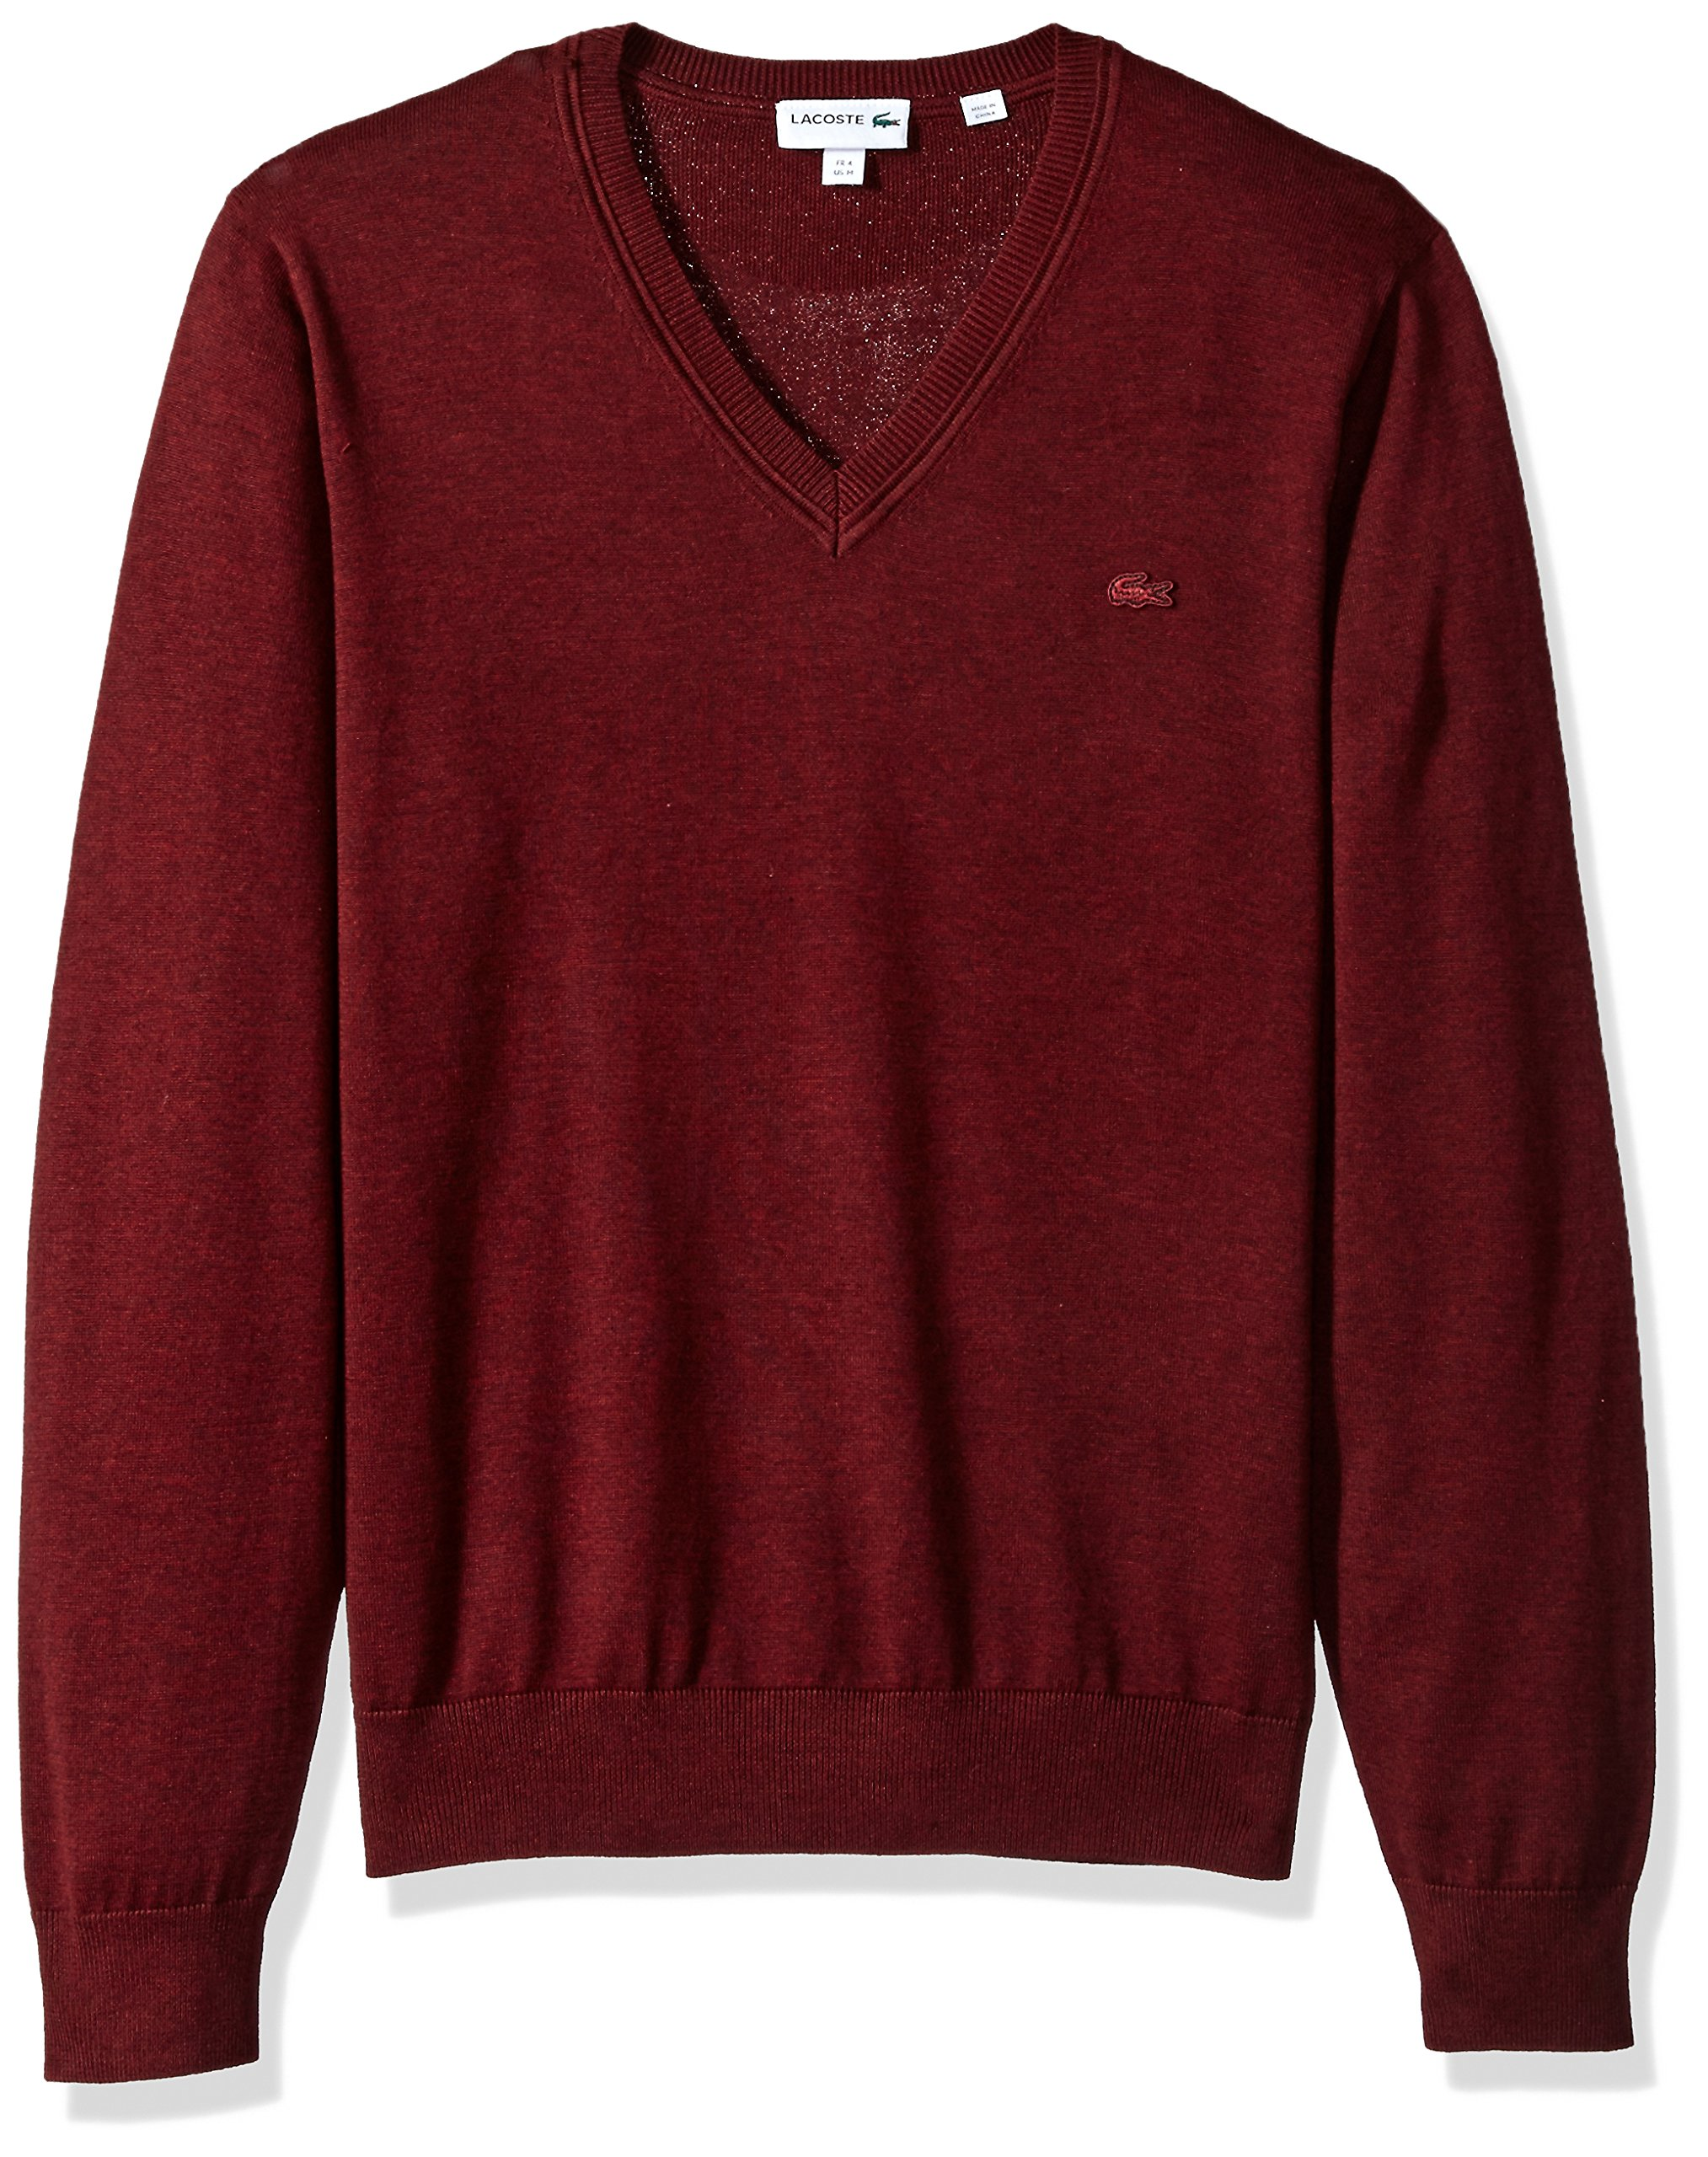 Lacoste Men's Cotton Jersey V Neck Sweater with Pique Stitch Details, Red Basque Chine, 9